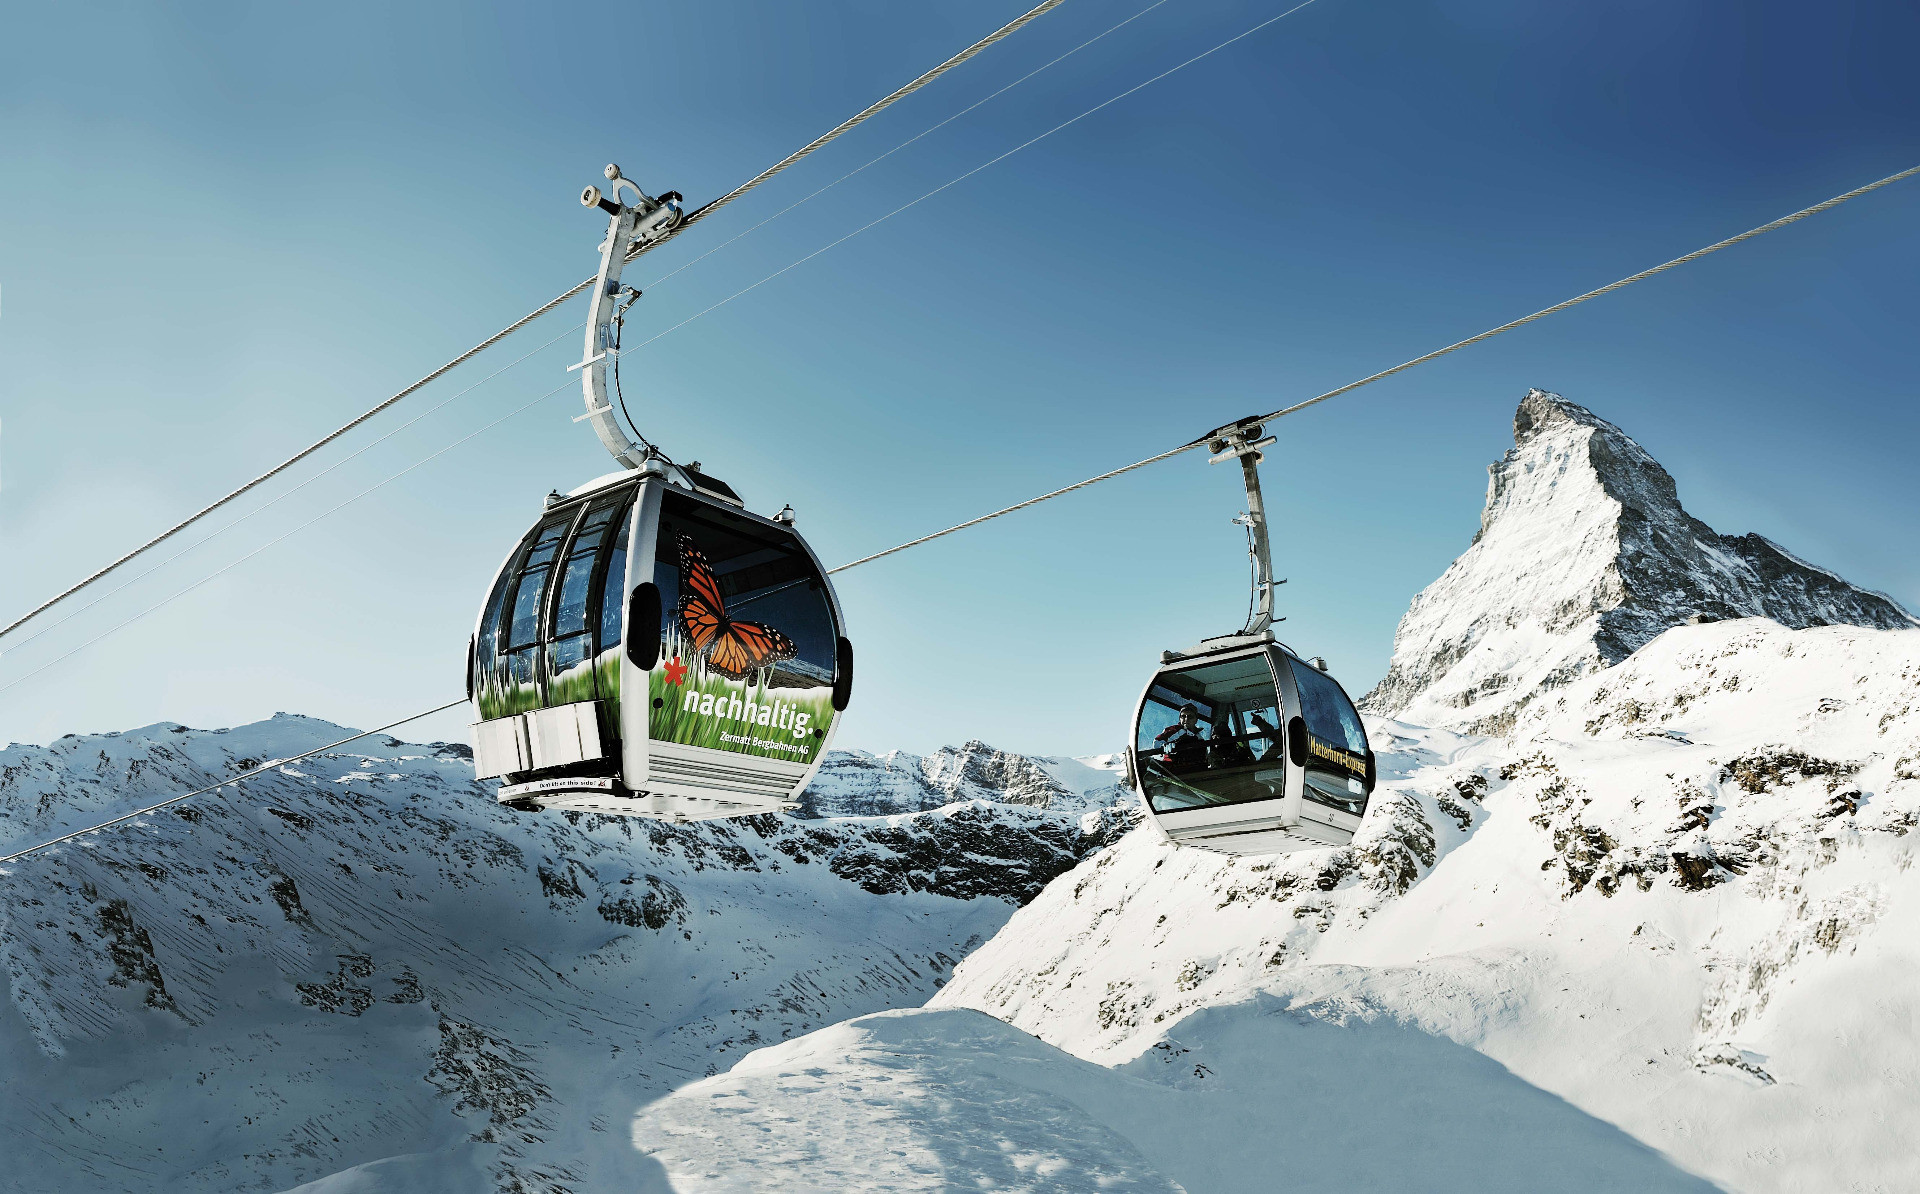 Gondola to the Matterhorn, Zermattundefined